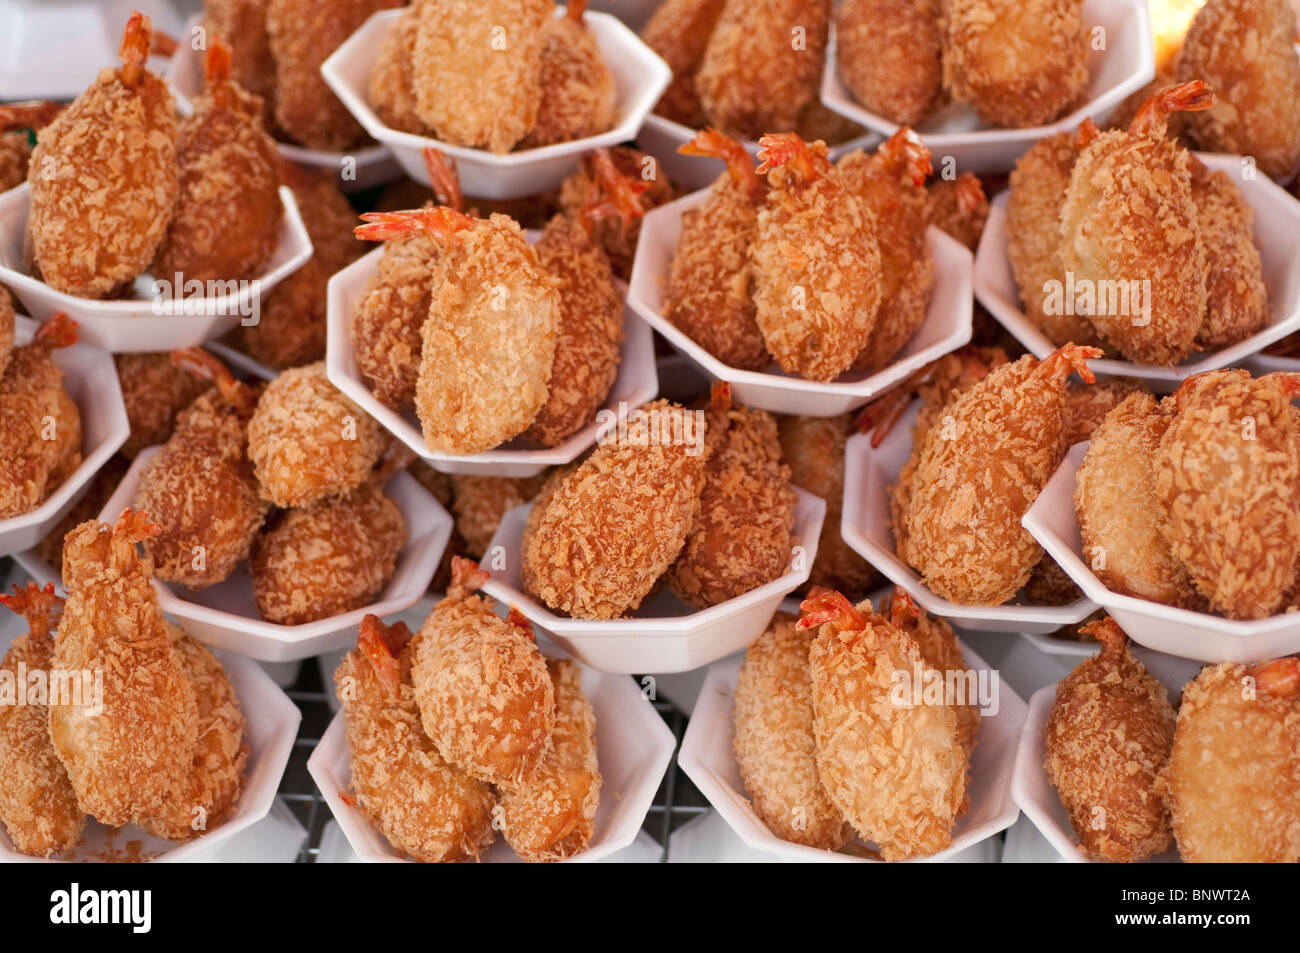 Fried shrimp for sale at the Chatuchak Market, Bangkok, Thailand, Asia - Stock Image